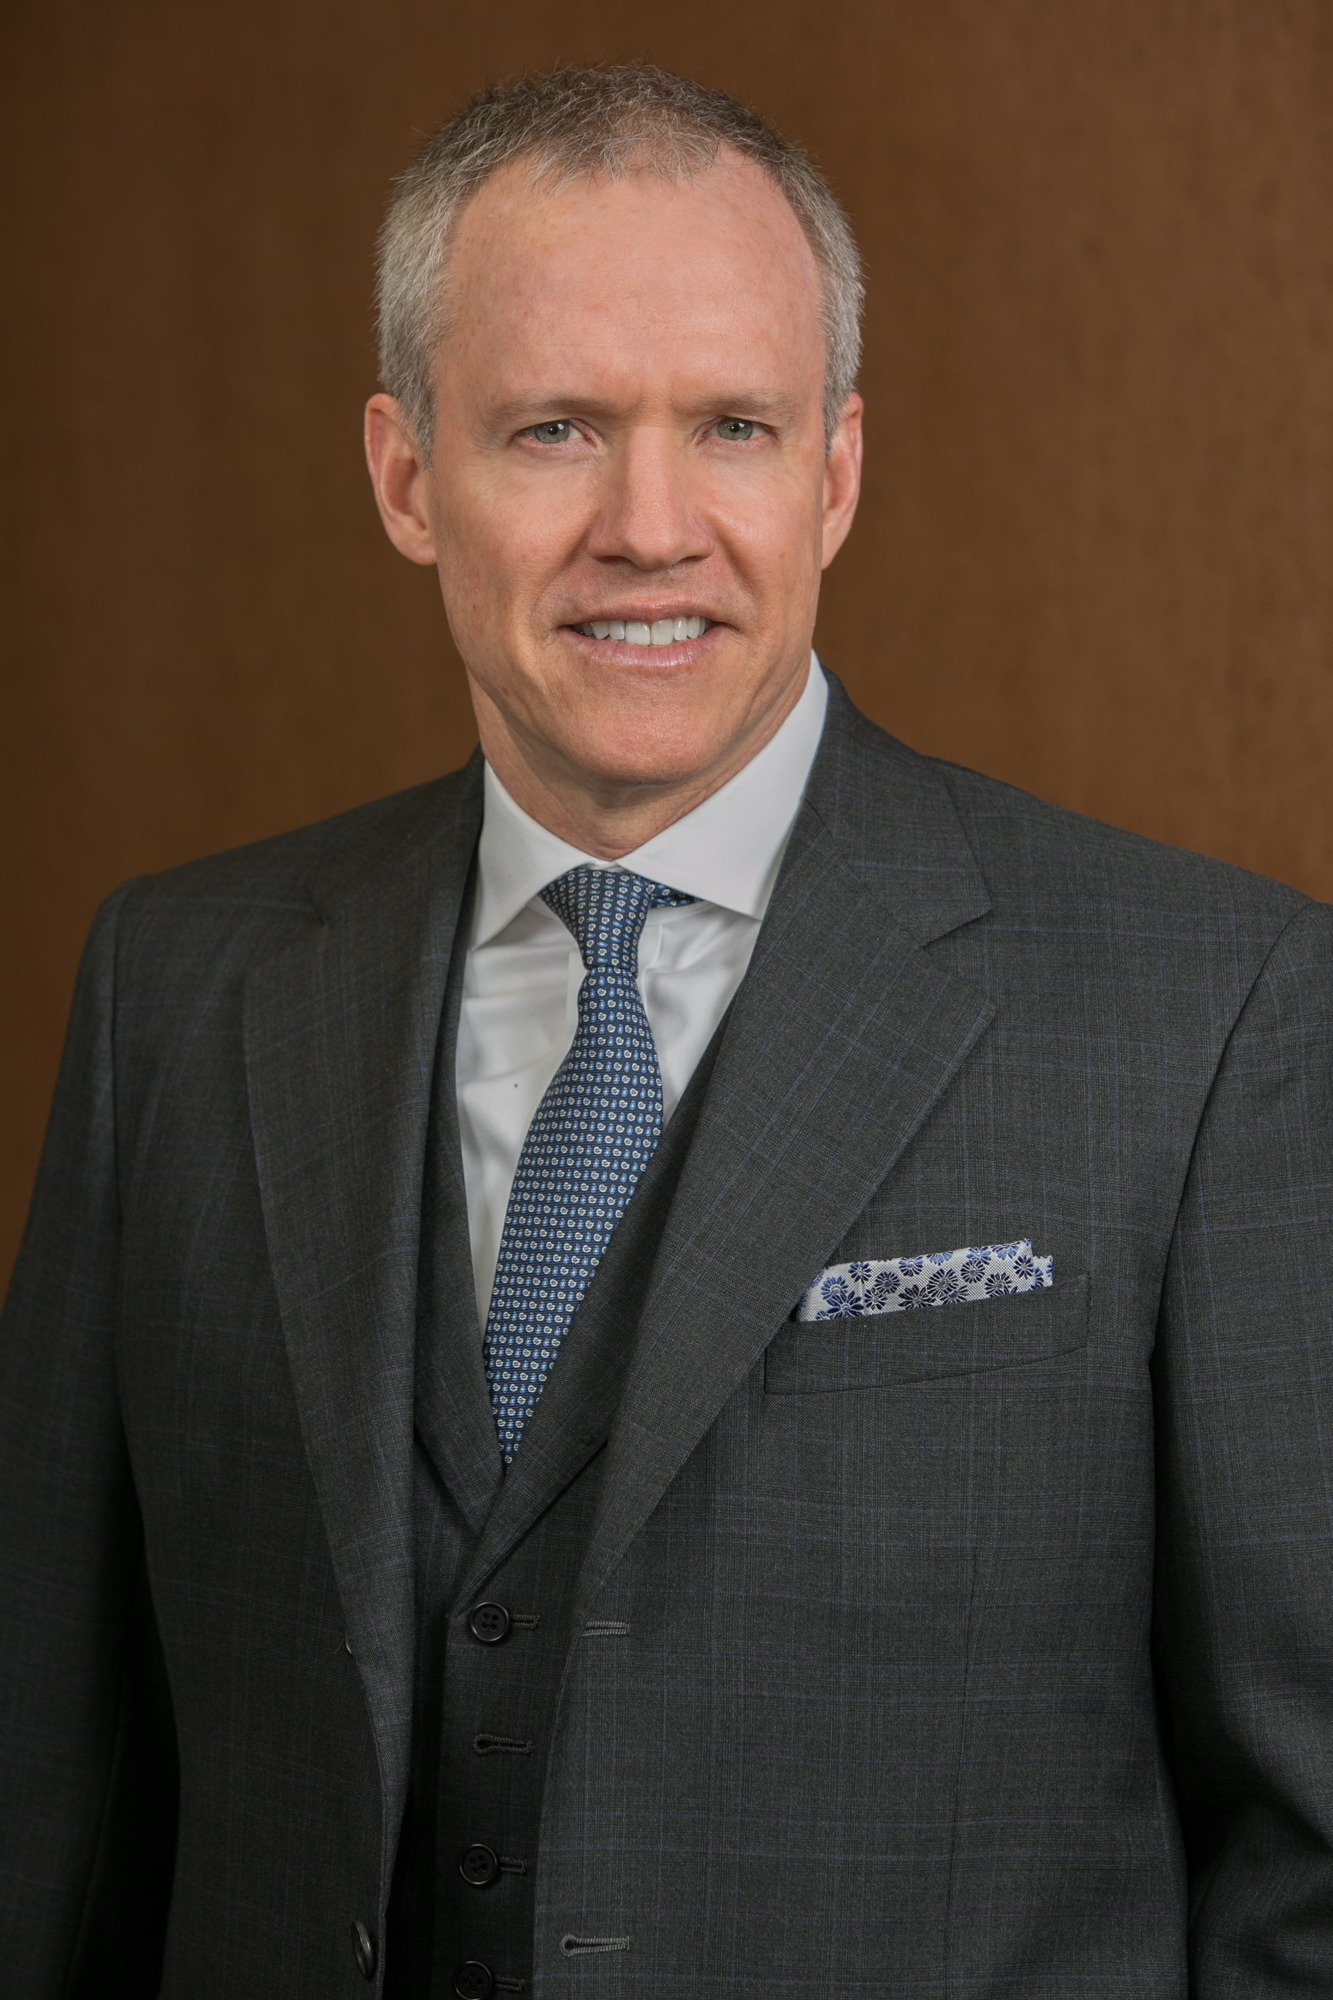 Kevin J. McGee